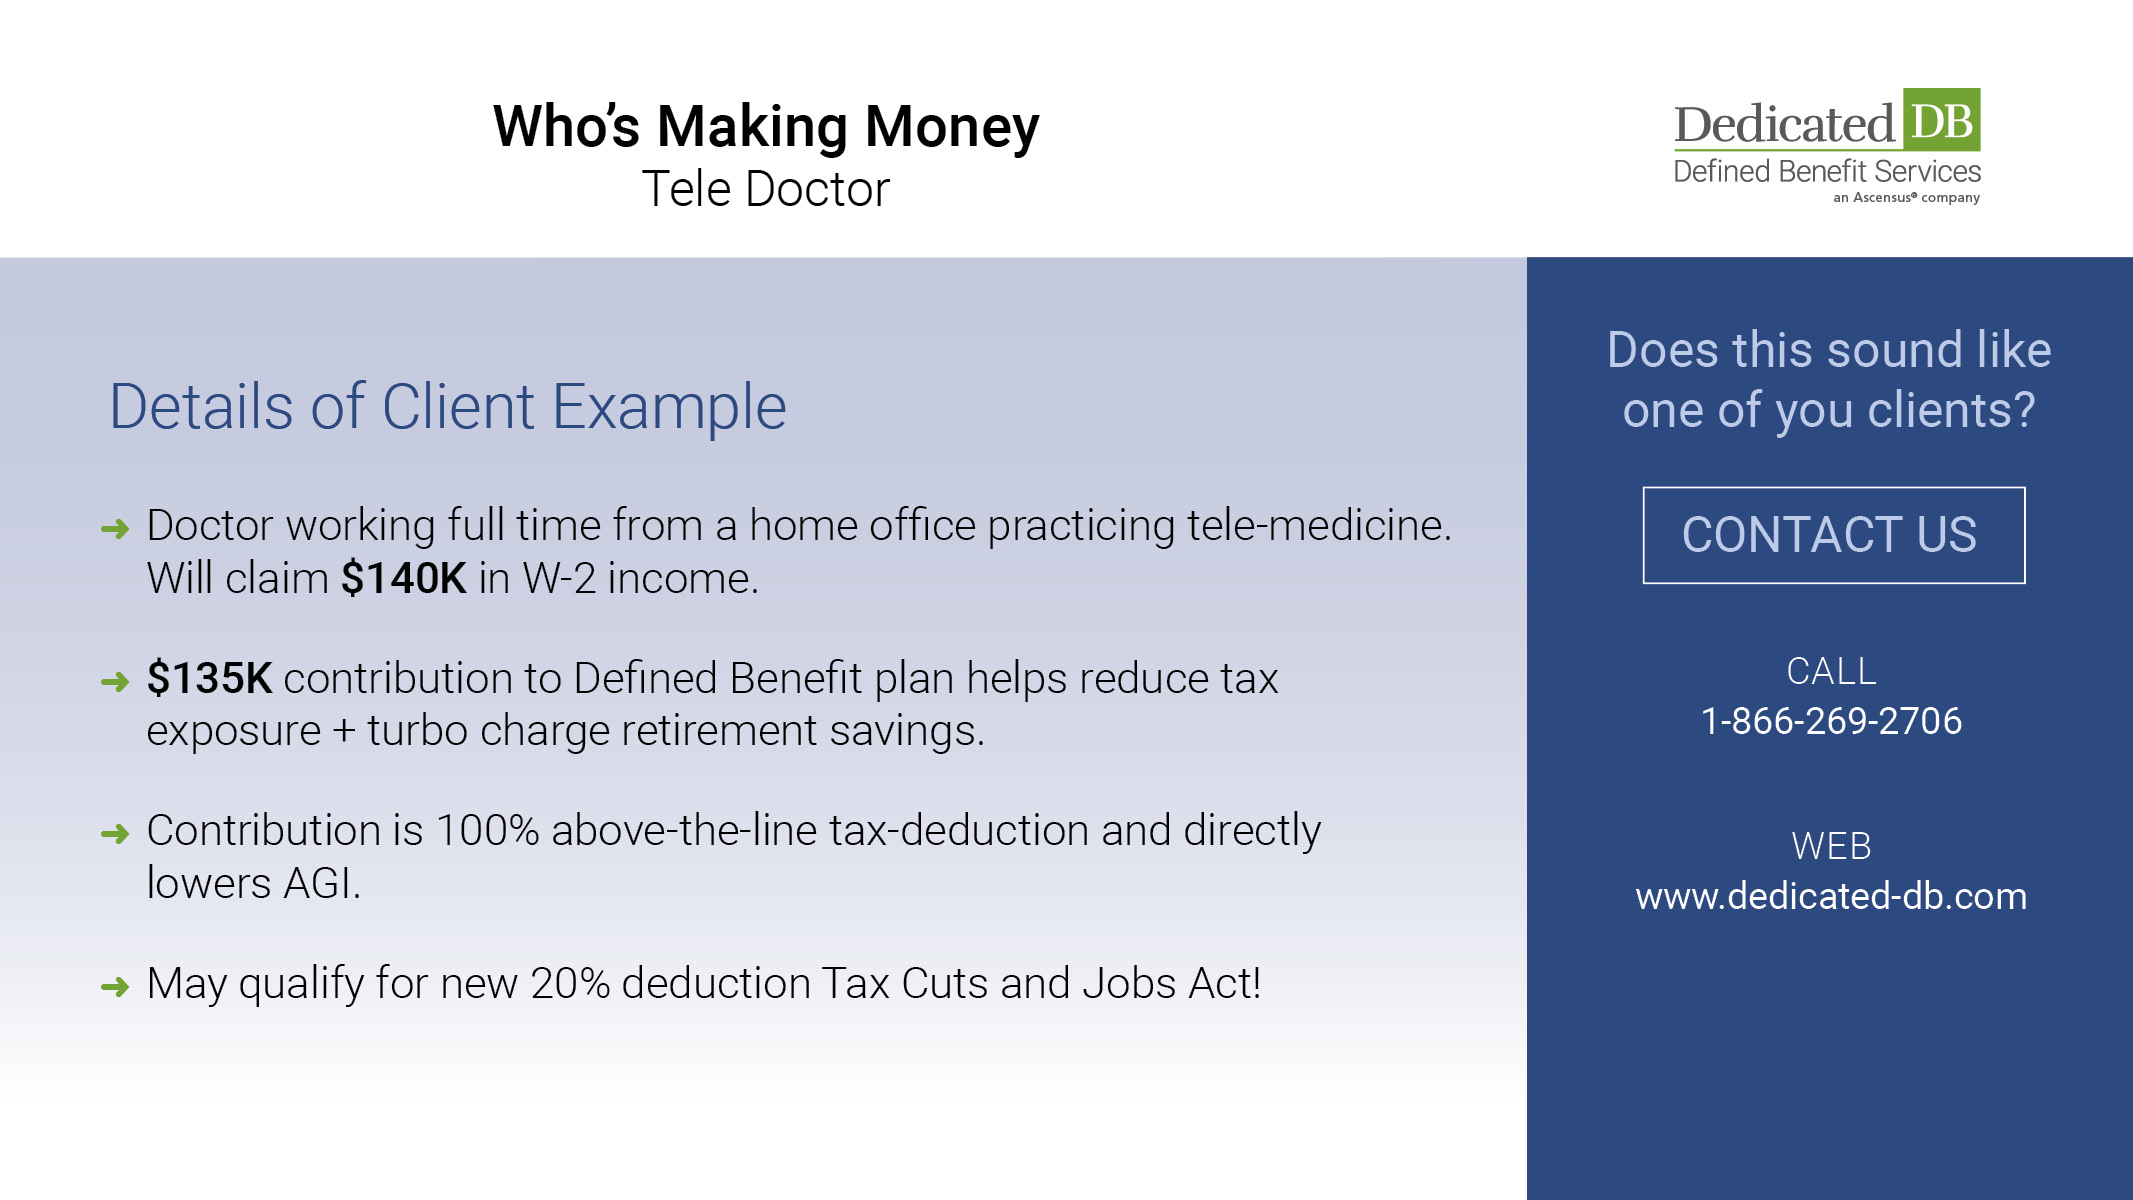 Who's Making Money - Tele Doctor graphic